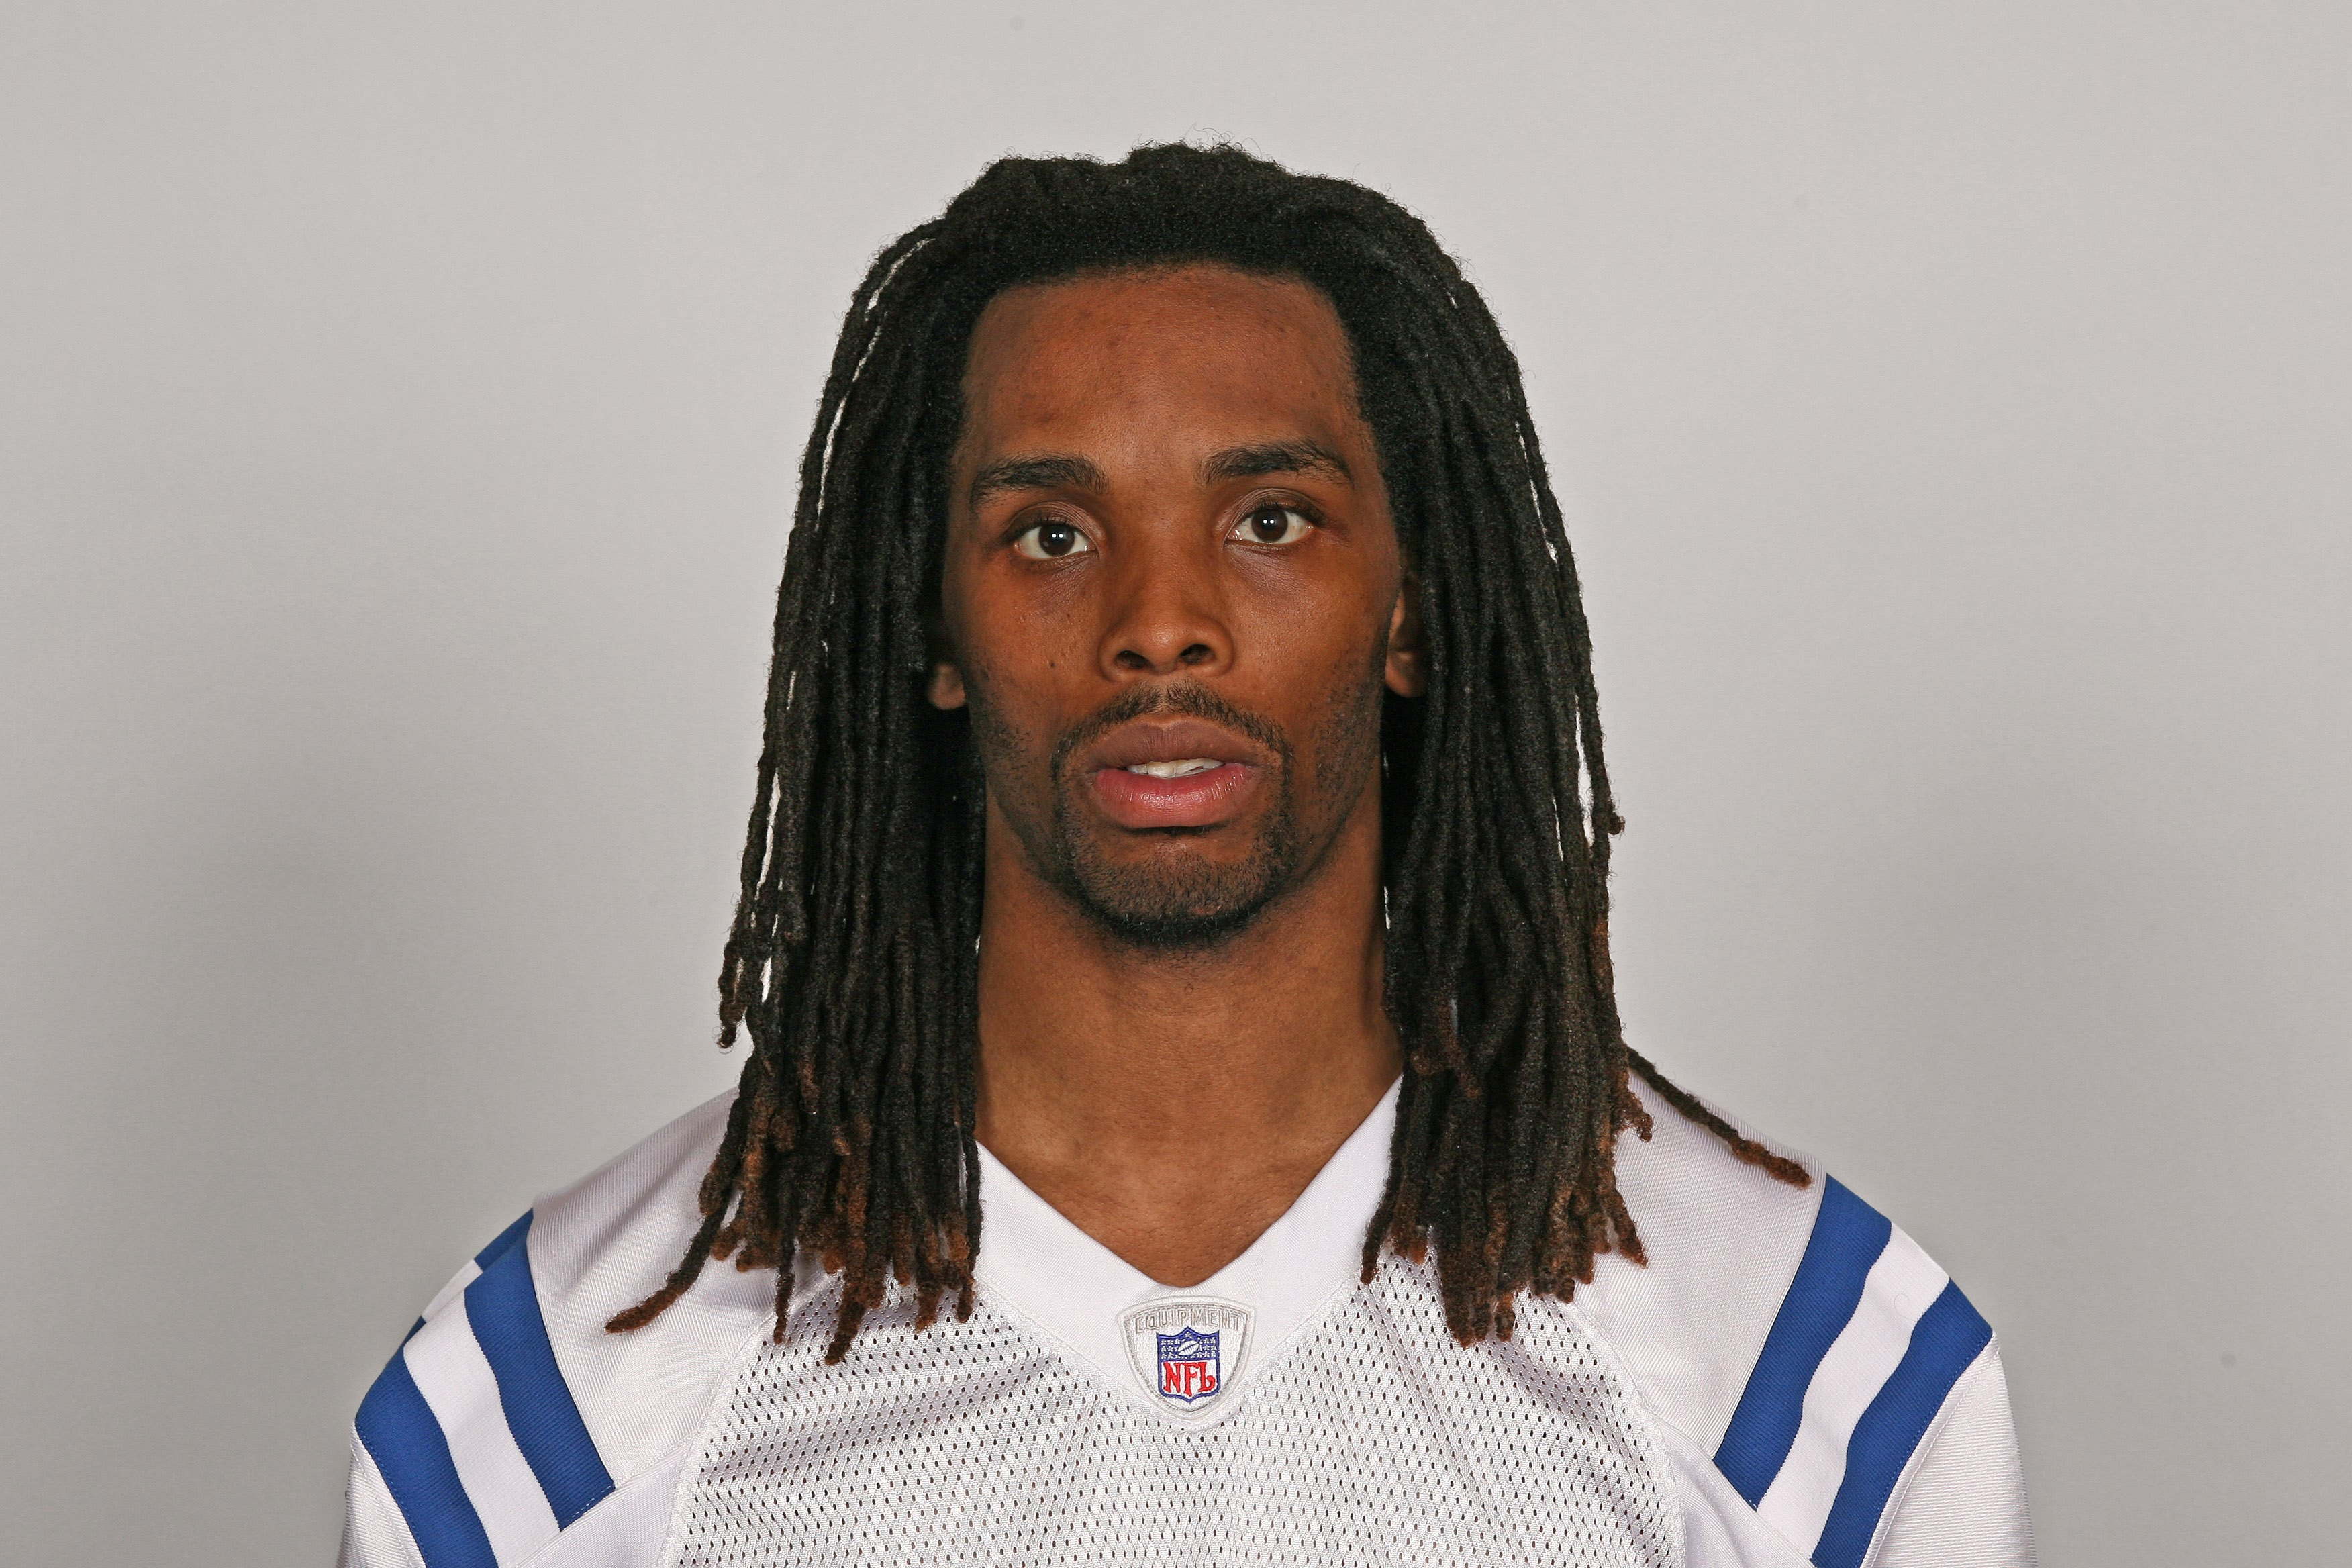 INDIANAPOLIS - 2009:  Taj Smith of the Indianapolis Colts poses for his 2009 NFL headshot at photo day in Indianapolis, Indiana.  (Photo by NFL Photos)